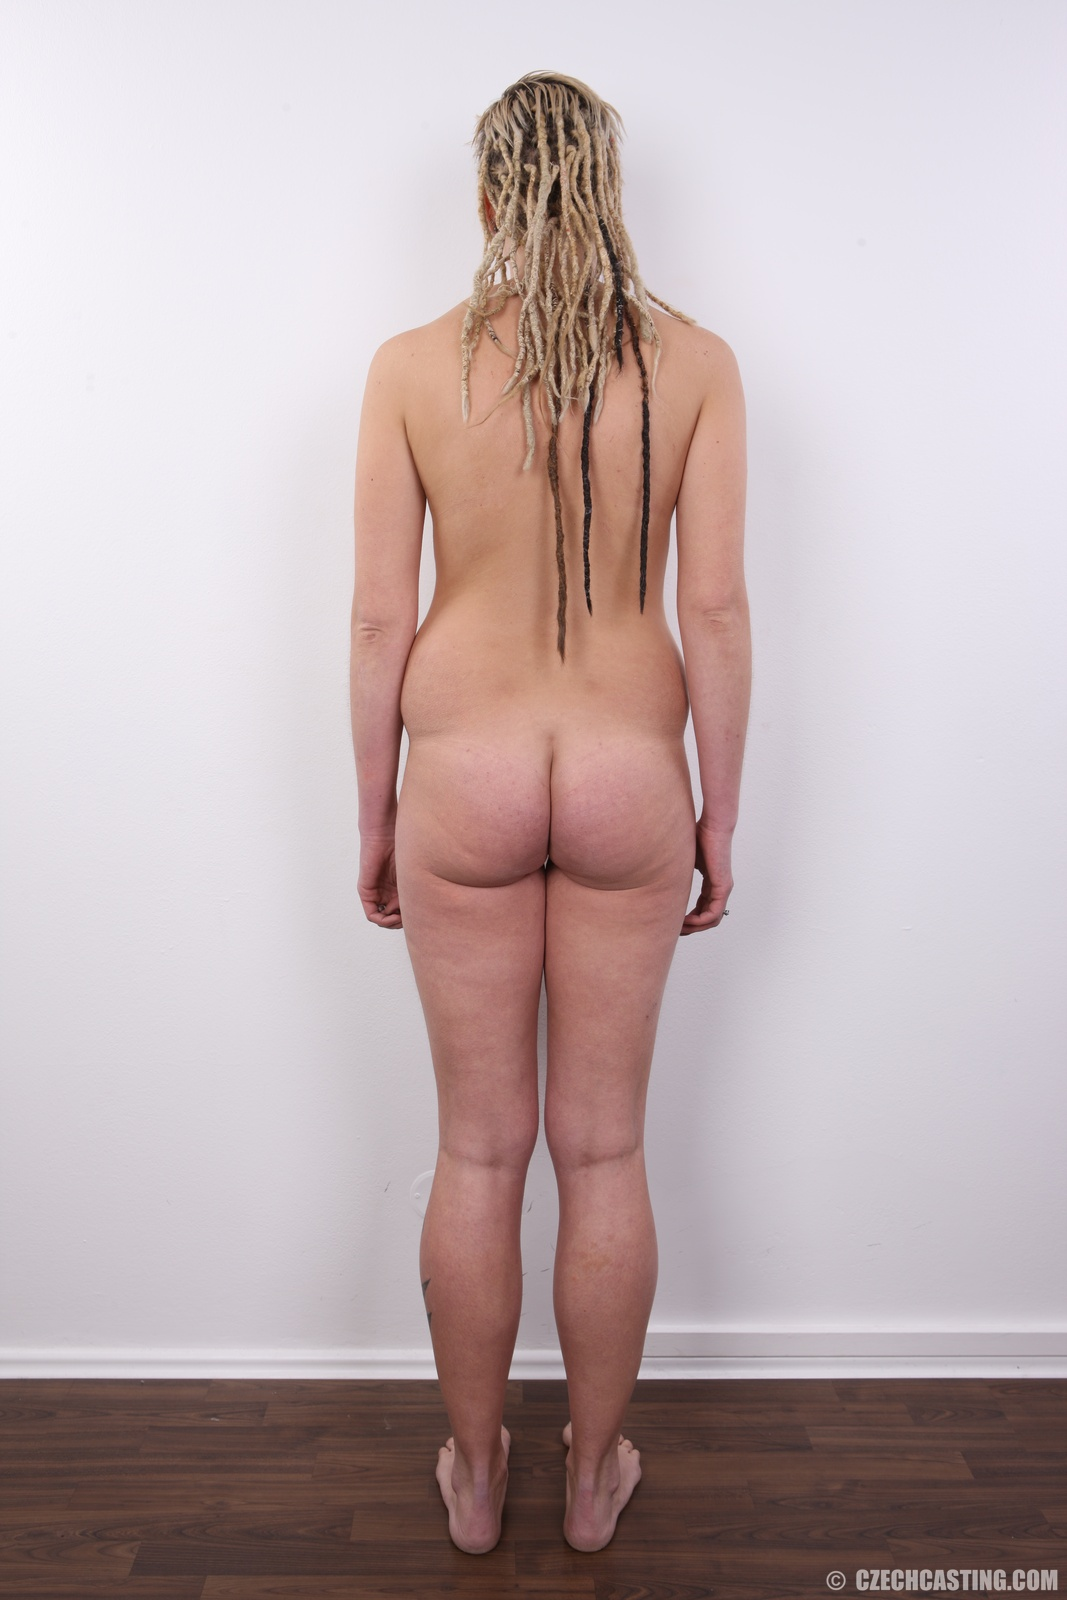 Pelicula Porno Sala Di Posa czech casting katerina (7777) you don't see many girls with